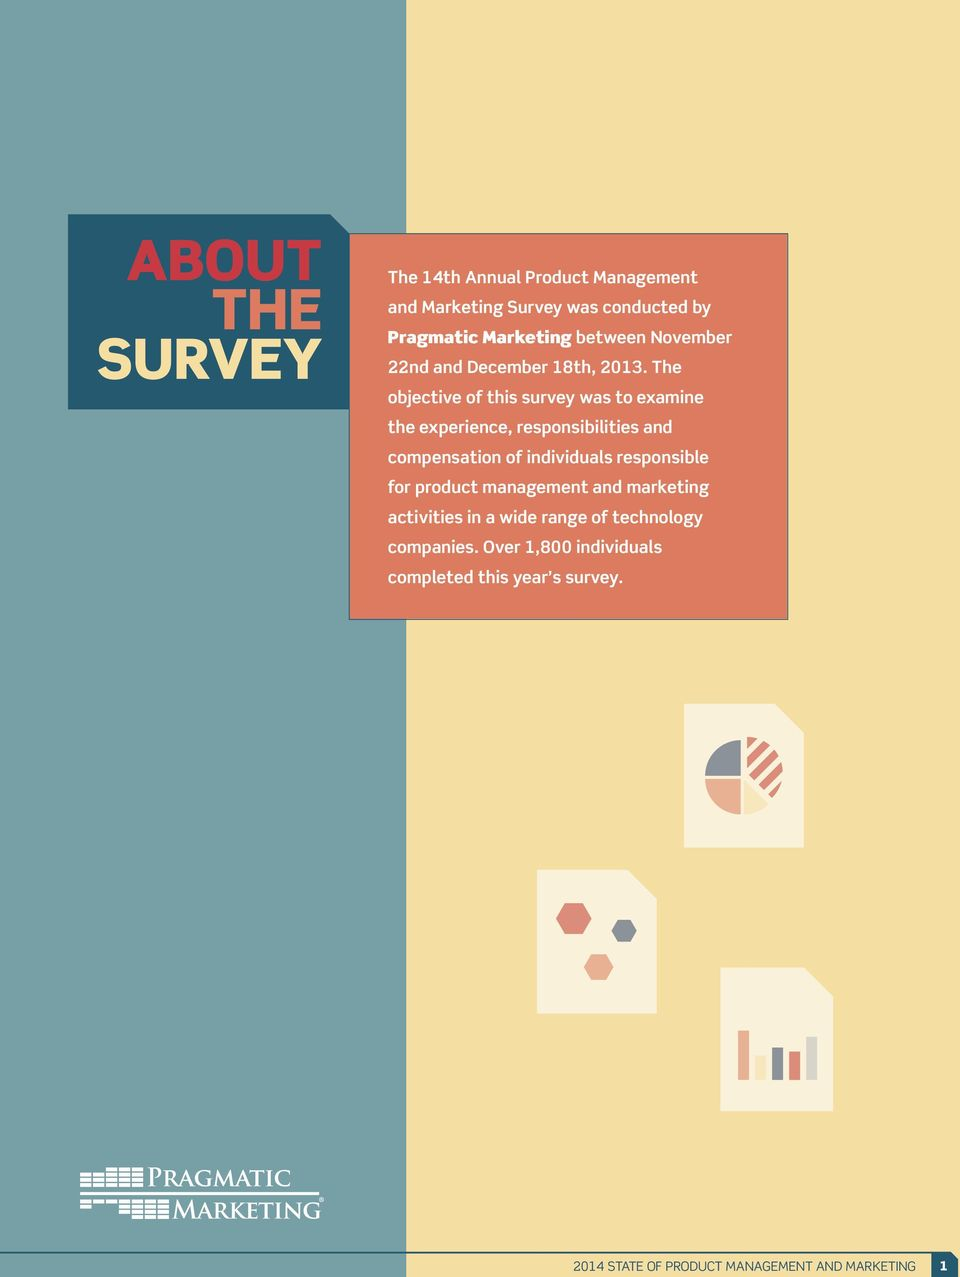 The objective of this survey was to examine the experience, responsibilities and compensation of